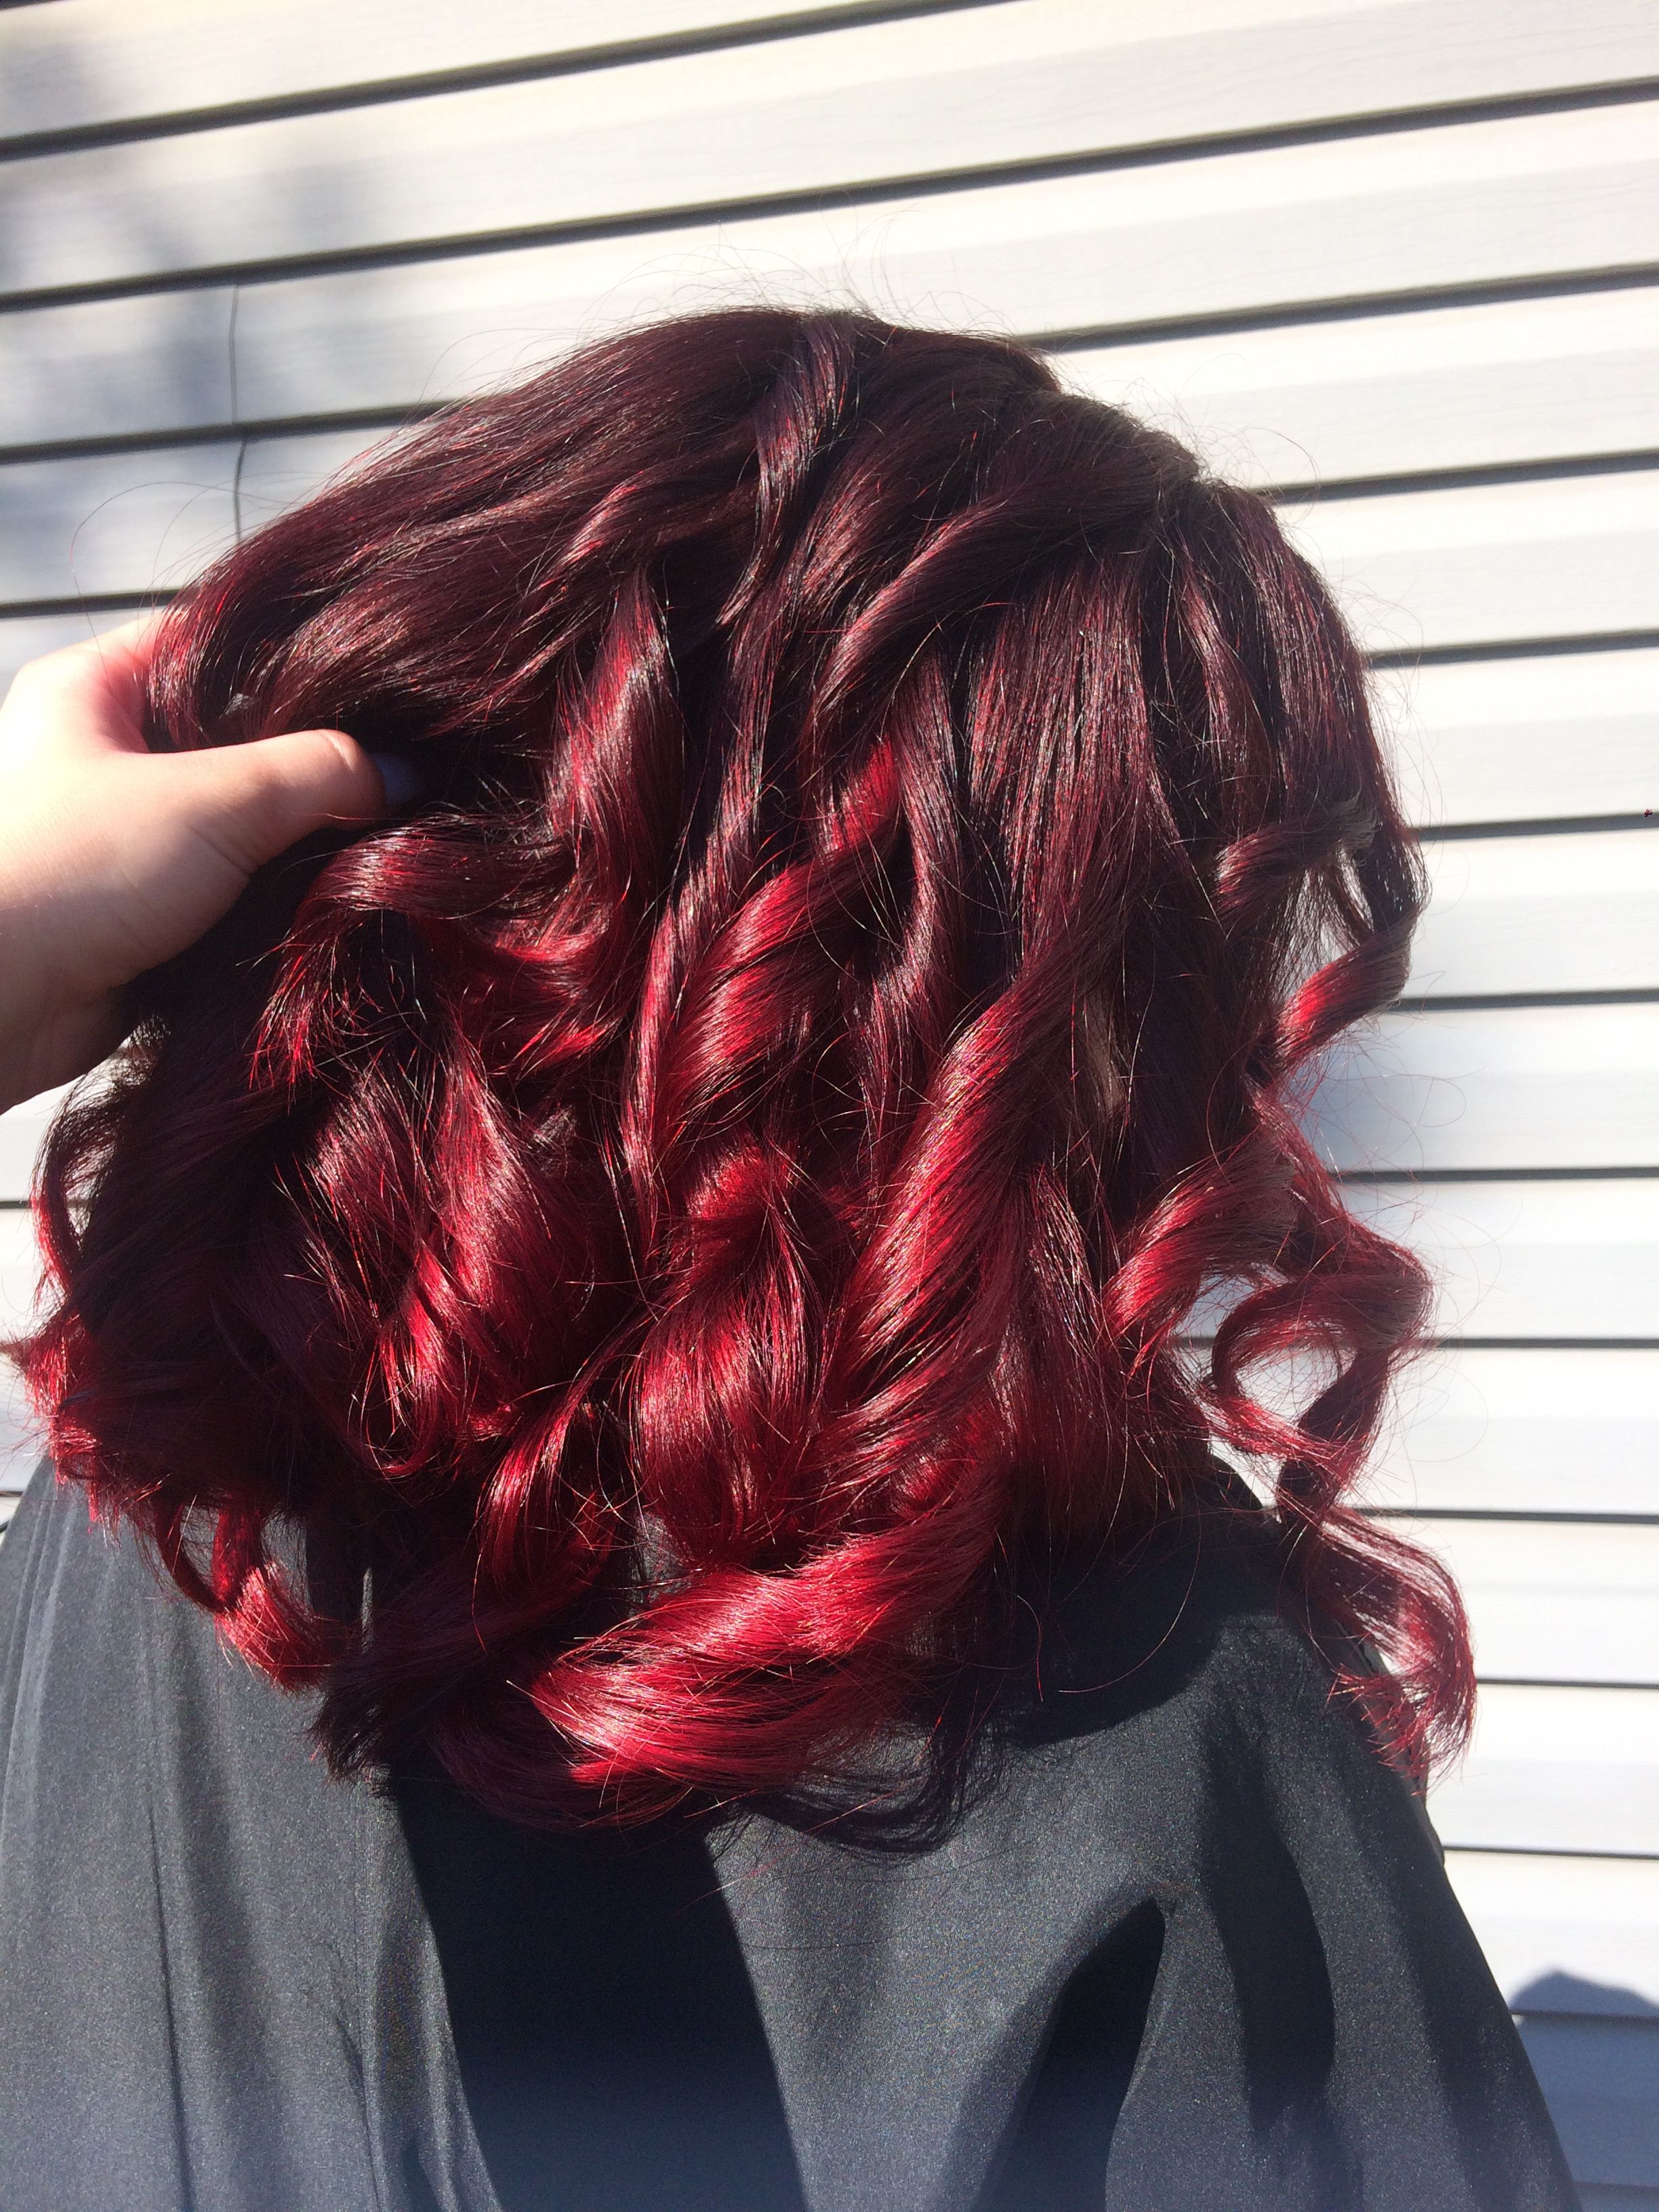 Red Hot Professional Hairstylist Hair Care Products Professional Hair Salon